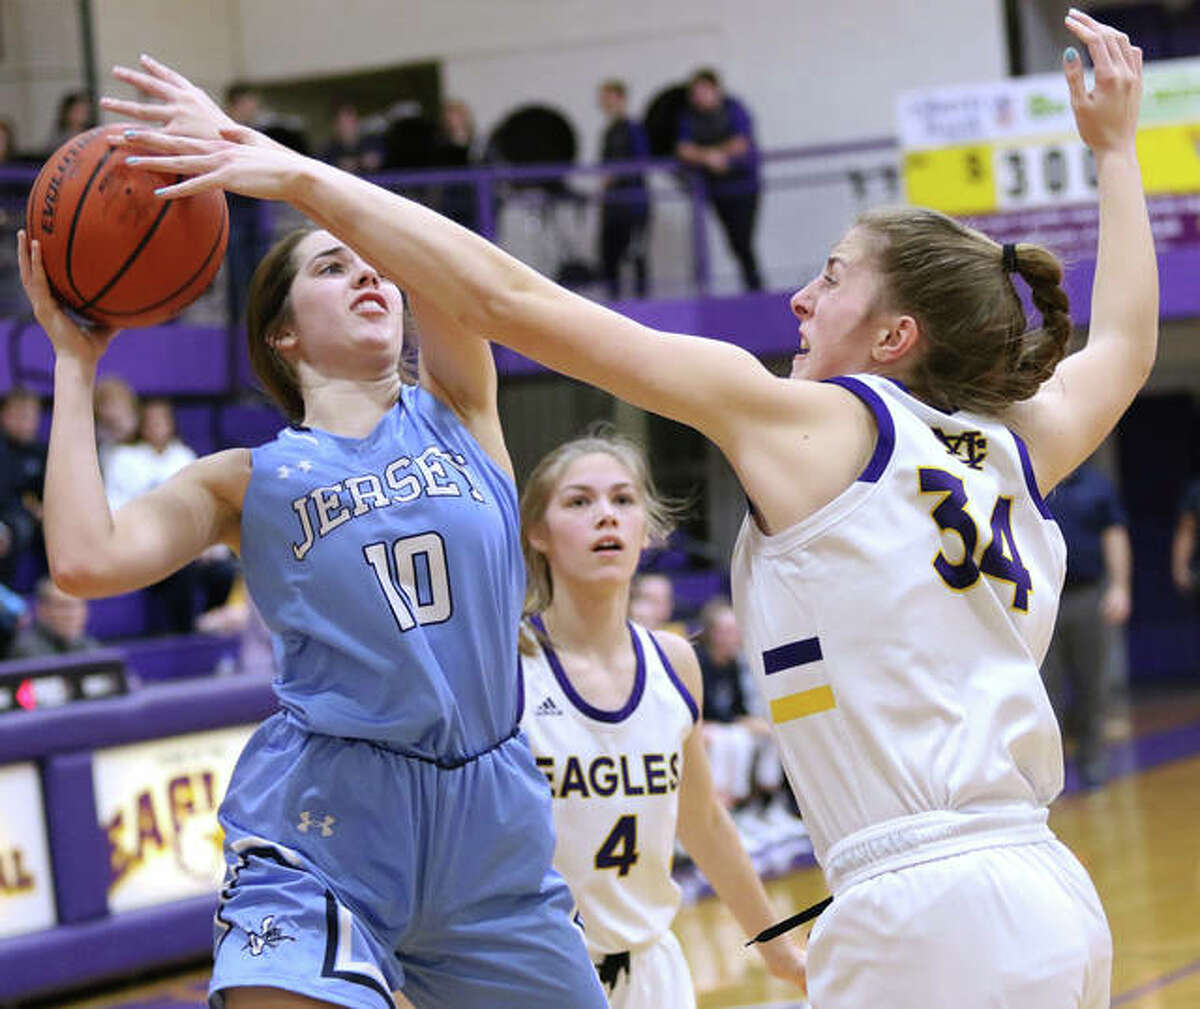 Jersey's Abby Manns (10) tries to shoot over Civic Memorial's Jackie Woelfel (right) while the Eagles' Maura Niemeier (4) watches the play in a Mississippi Valley Conference girls basketball game Tuesday night in Bethalto.